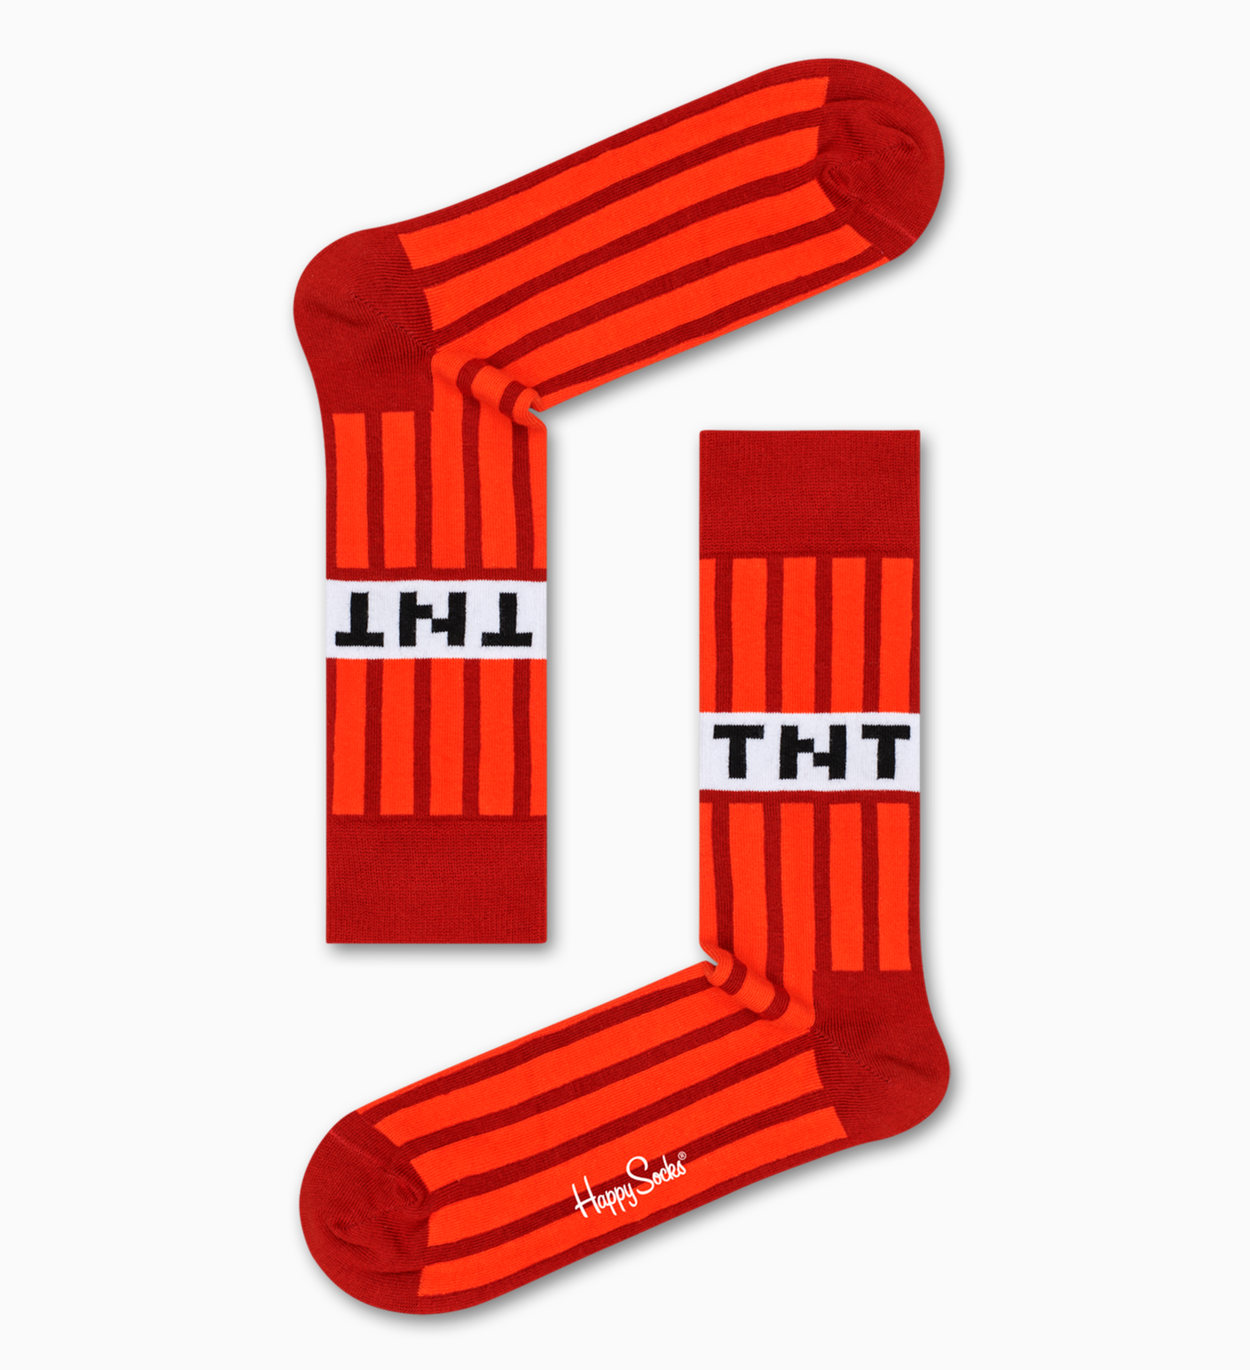 Happy Socks x Minecraft: TNT Sock - Red